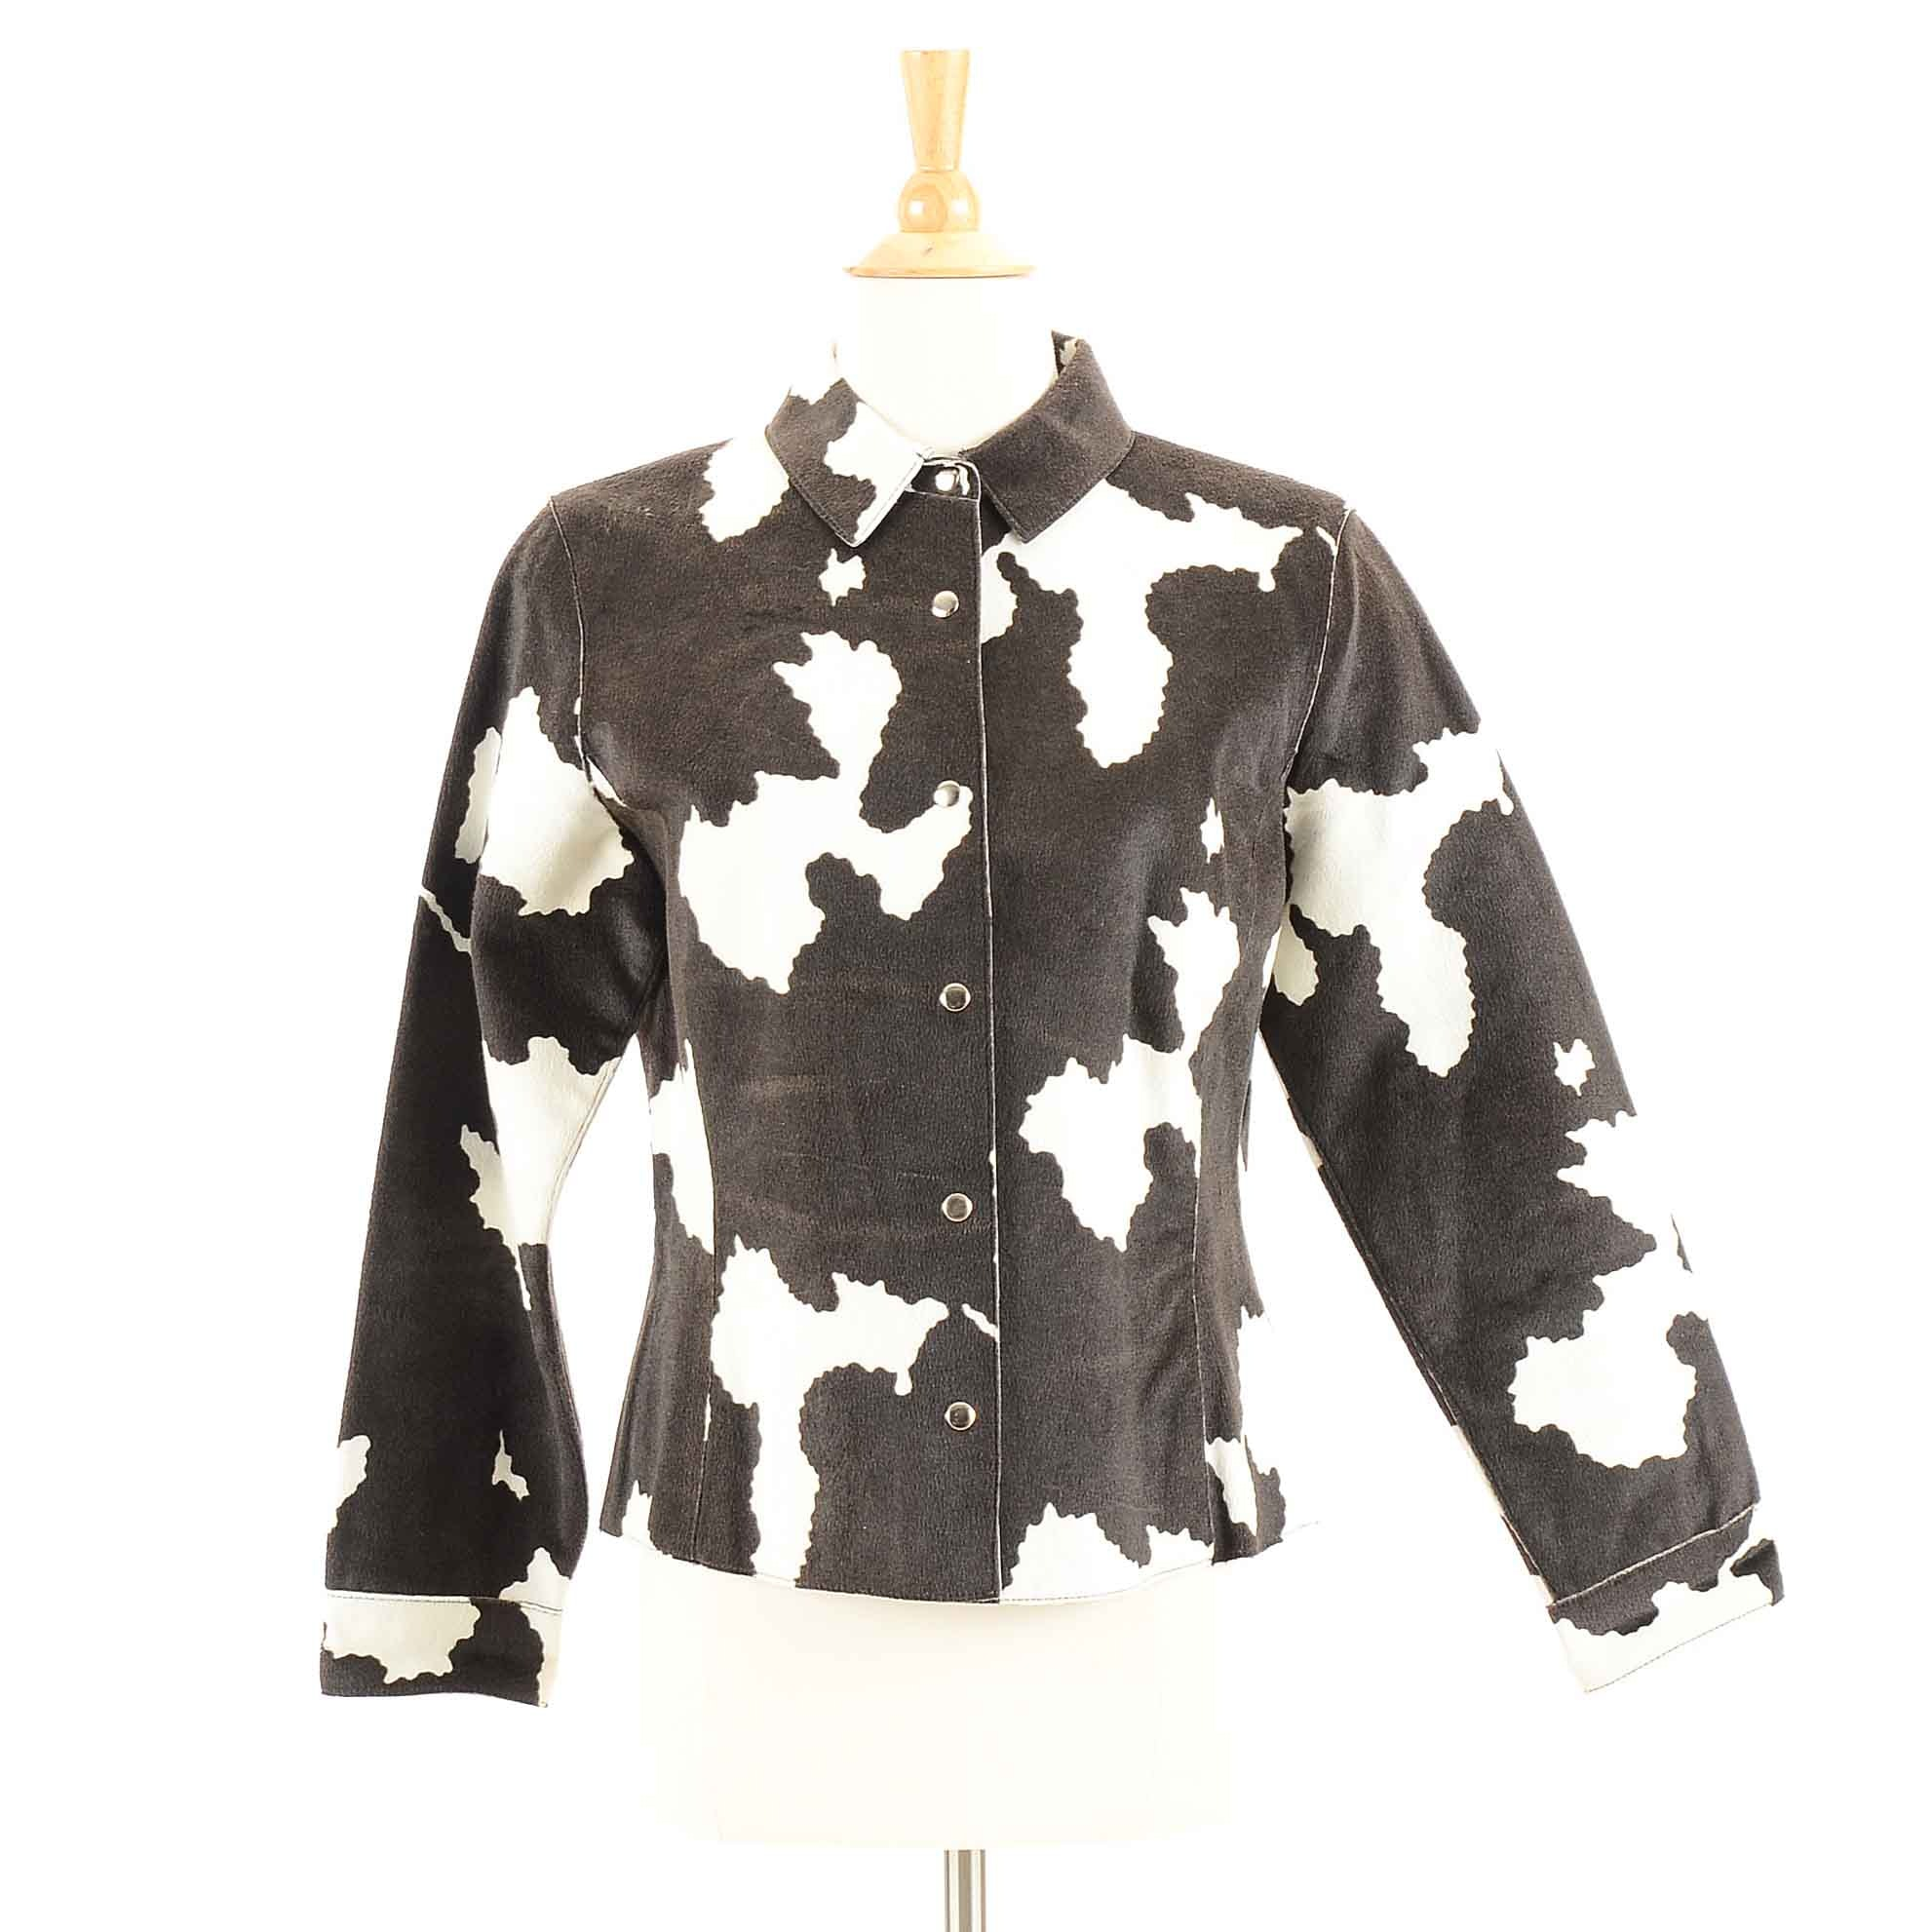 Women's Copper Key Dyed Black and White Calf Leather Jacket